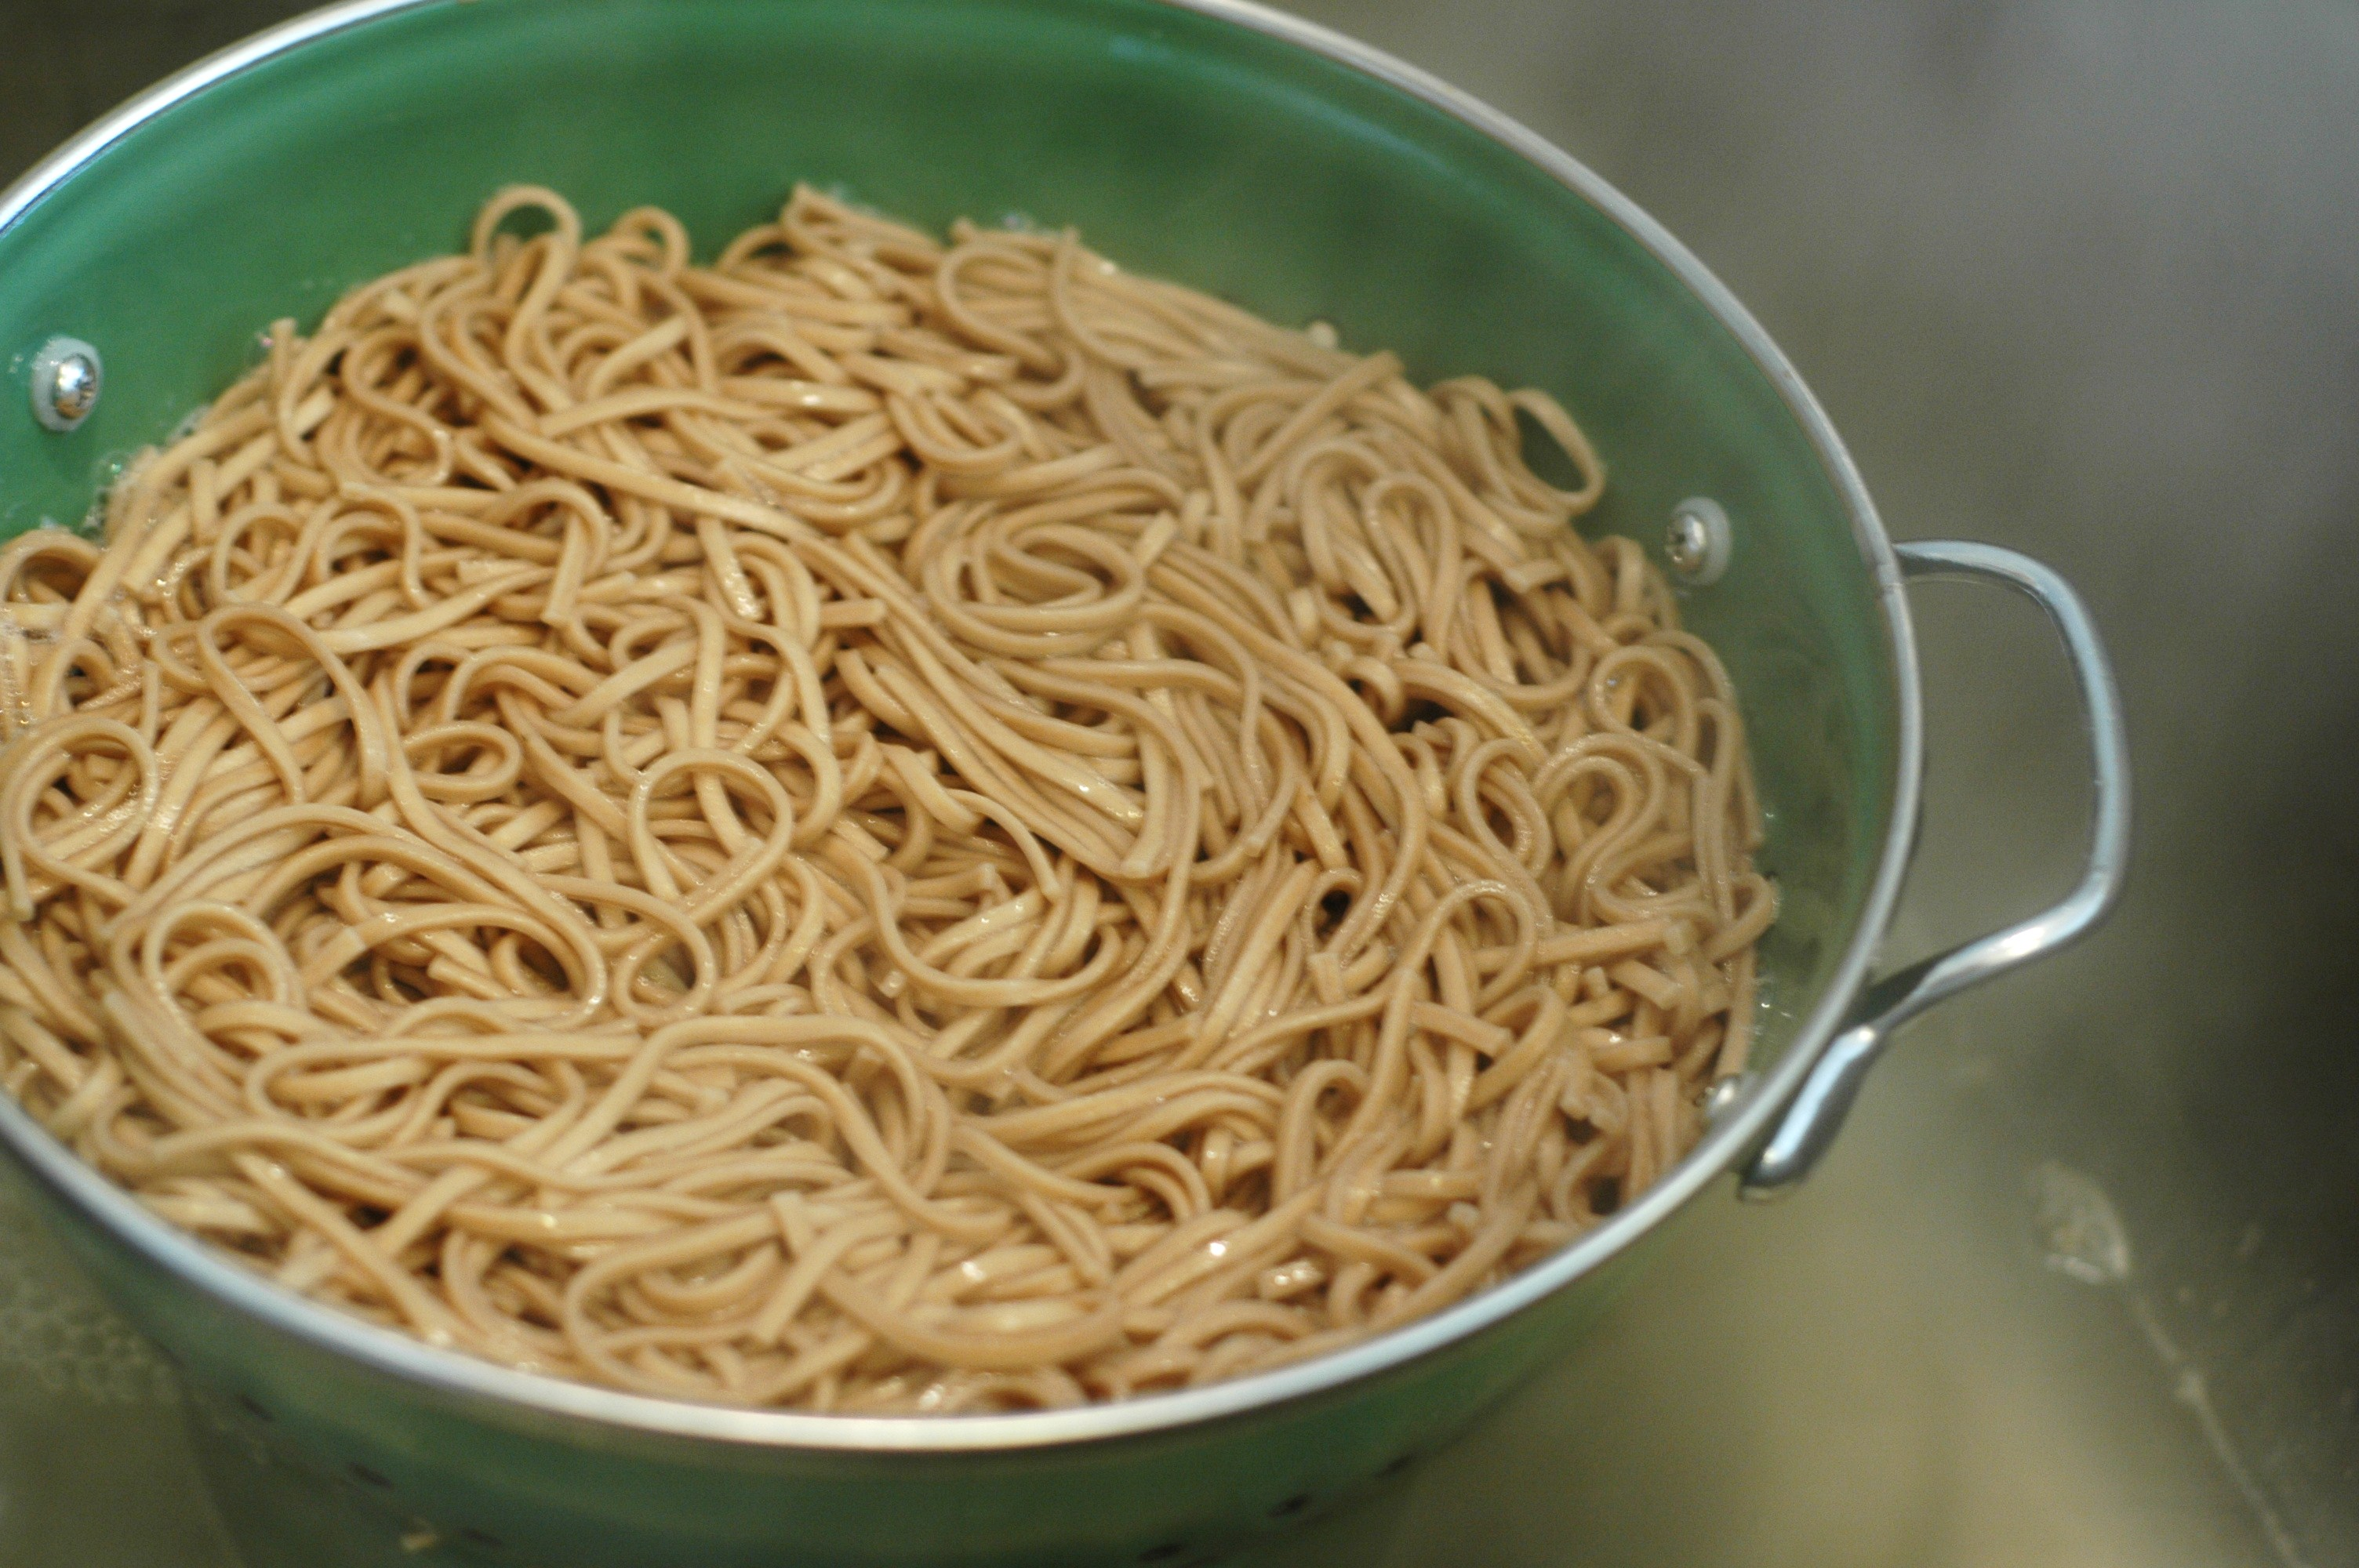 Cold Peanut Sesame Noodles - but i'm hungry